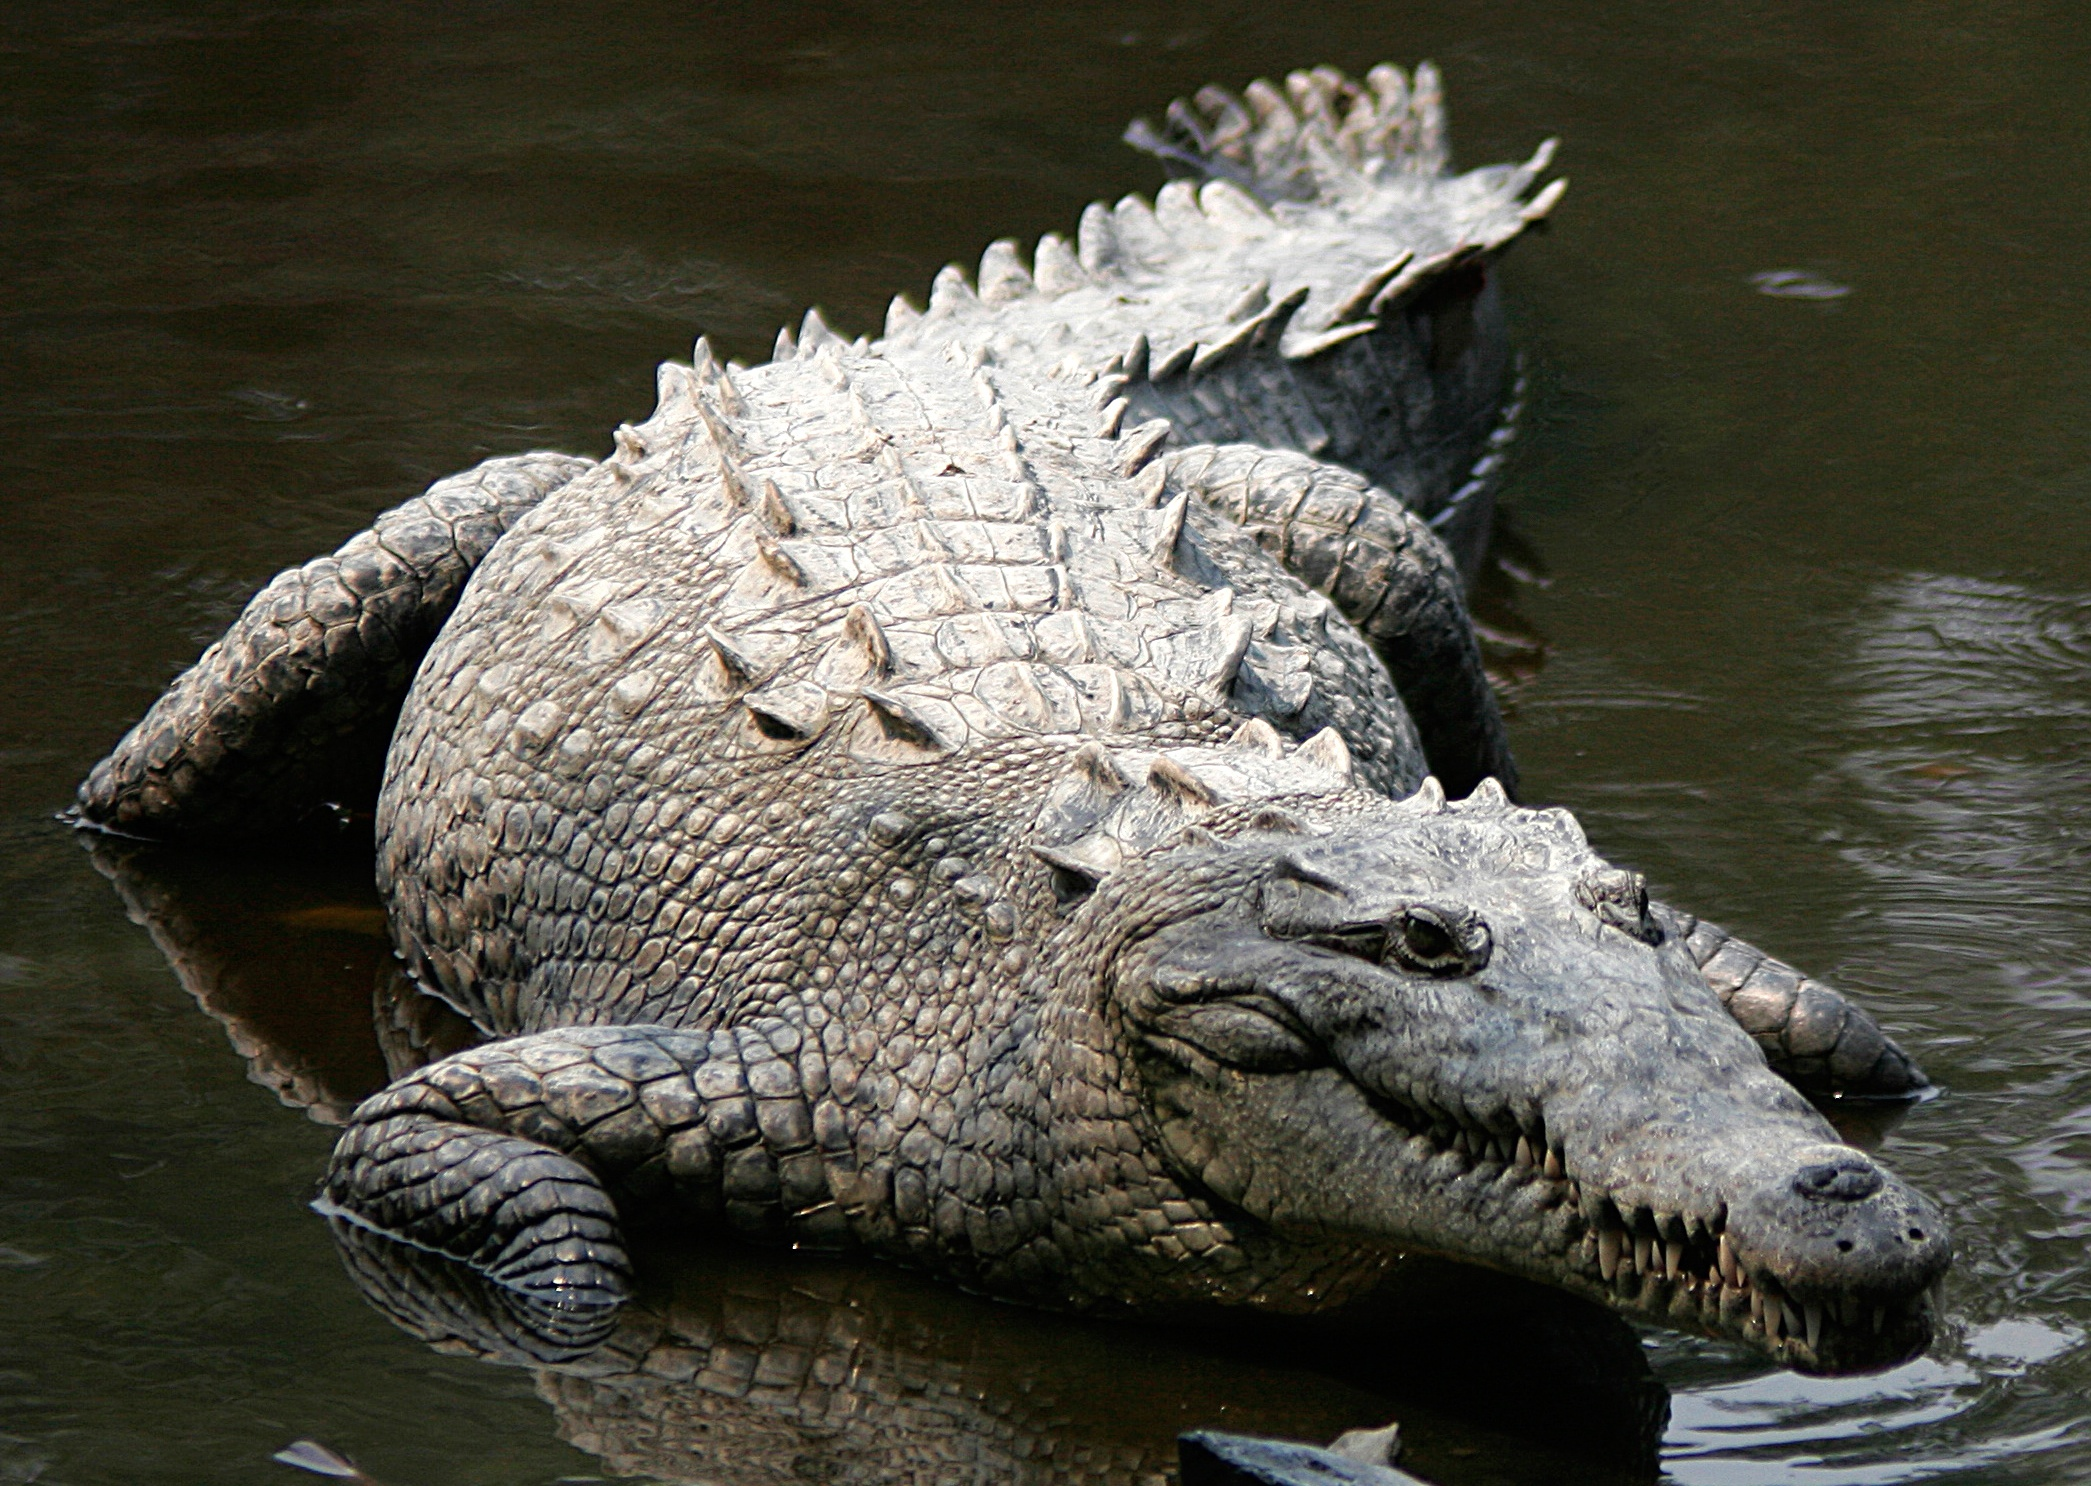 Crocodiles Galore Find These Awesome Creatures En Route